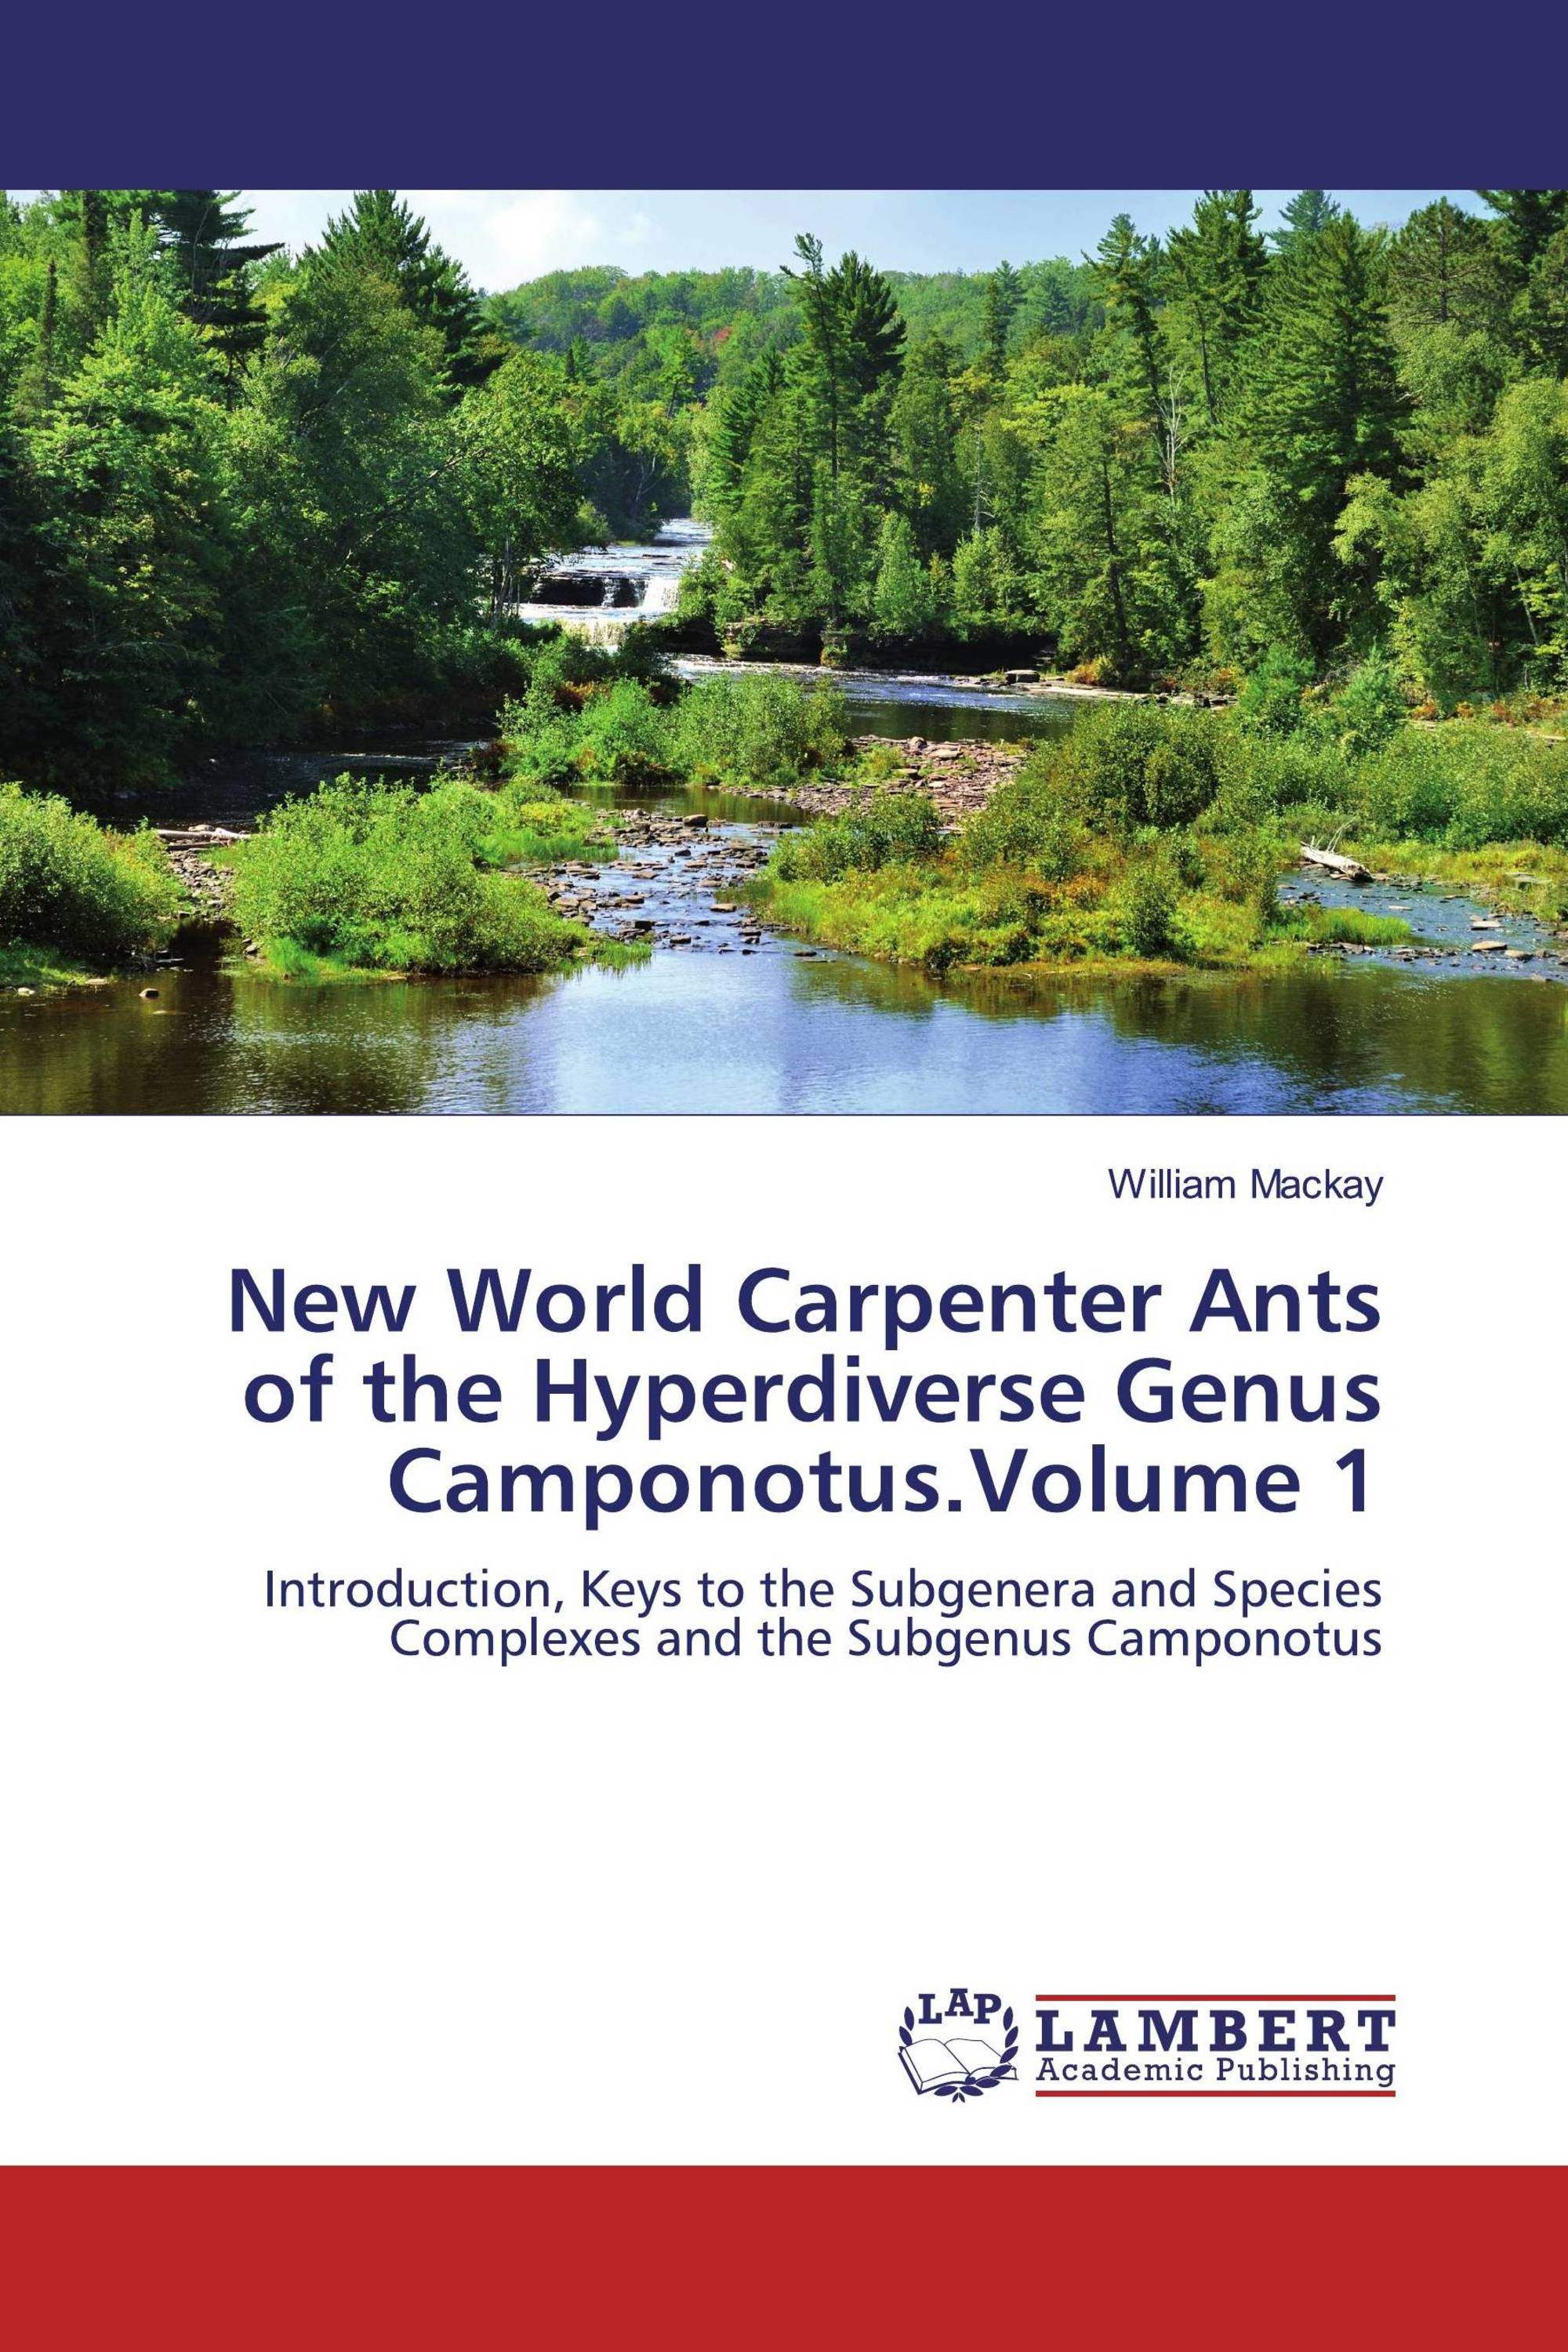 New World Carpenter Ants of the Hyperdiverse Genus Camponotus.Volume 1